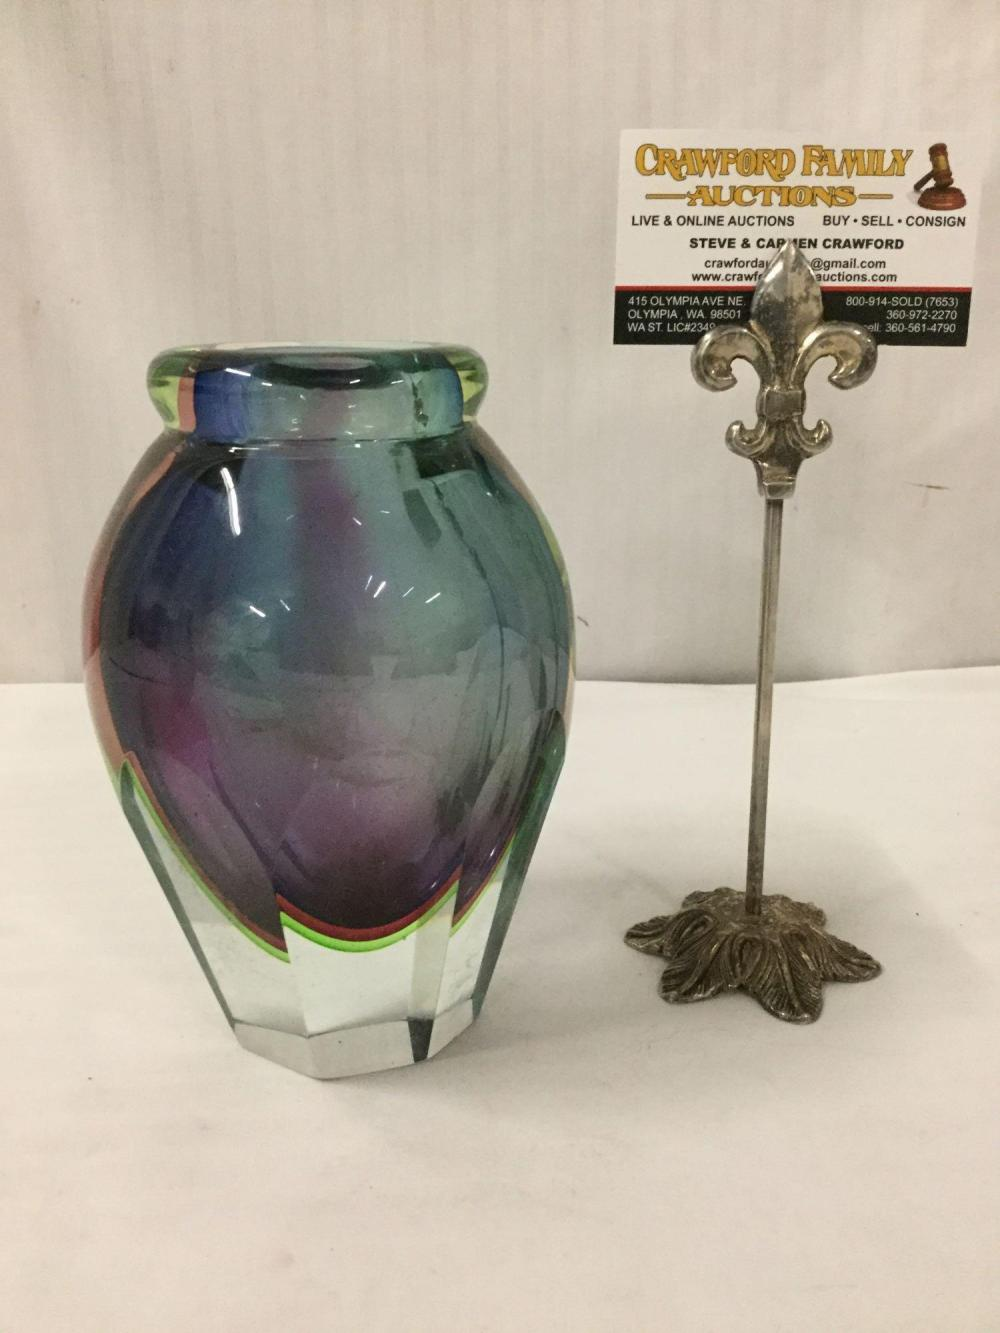 Lot 21: Cut glass multicolor vase w/ an oviod body ending on a tapered base - artist unknown